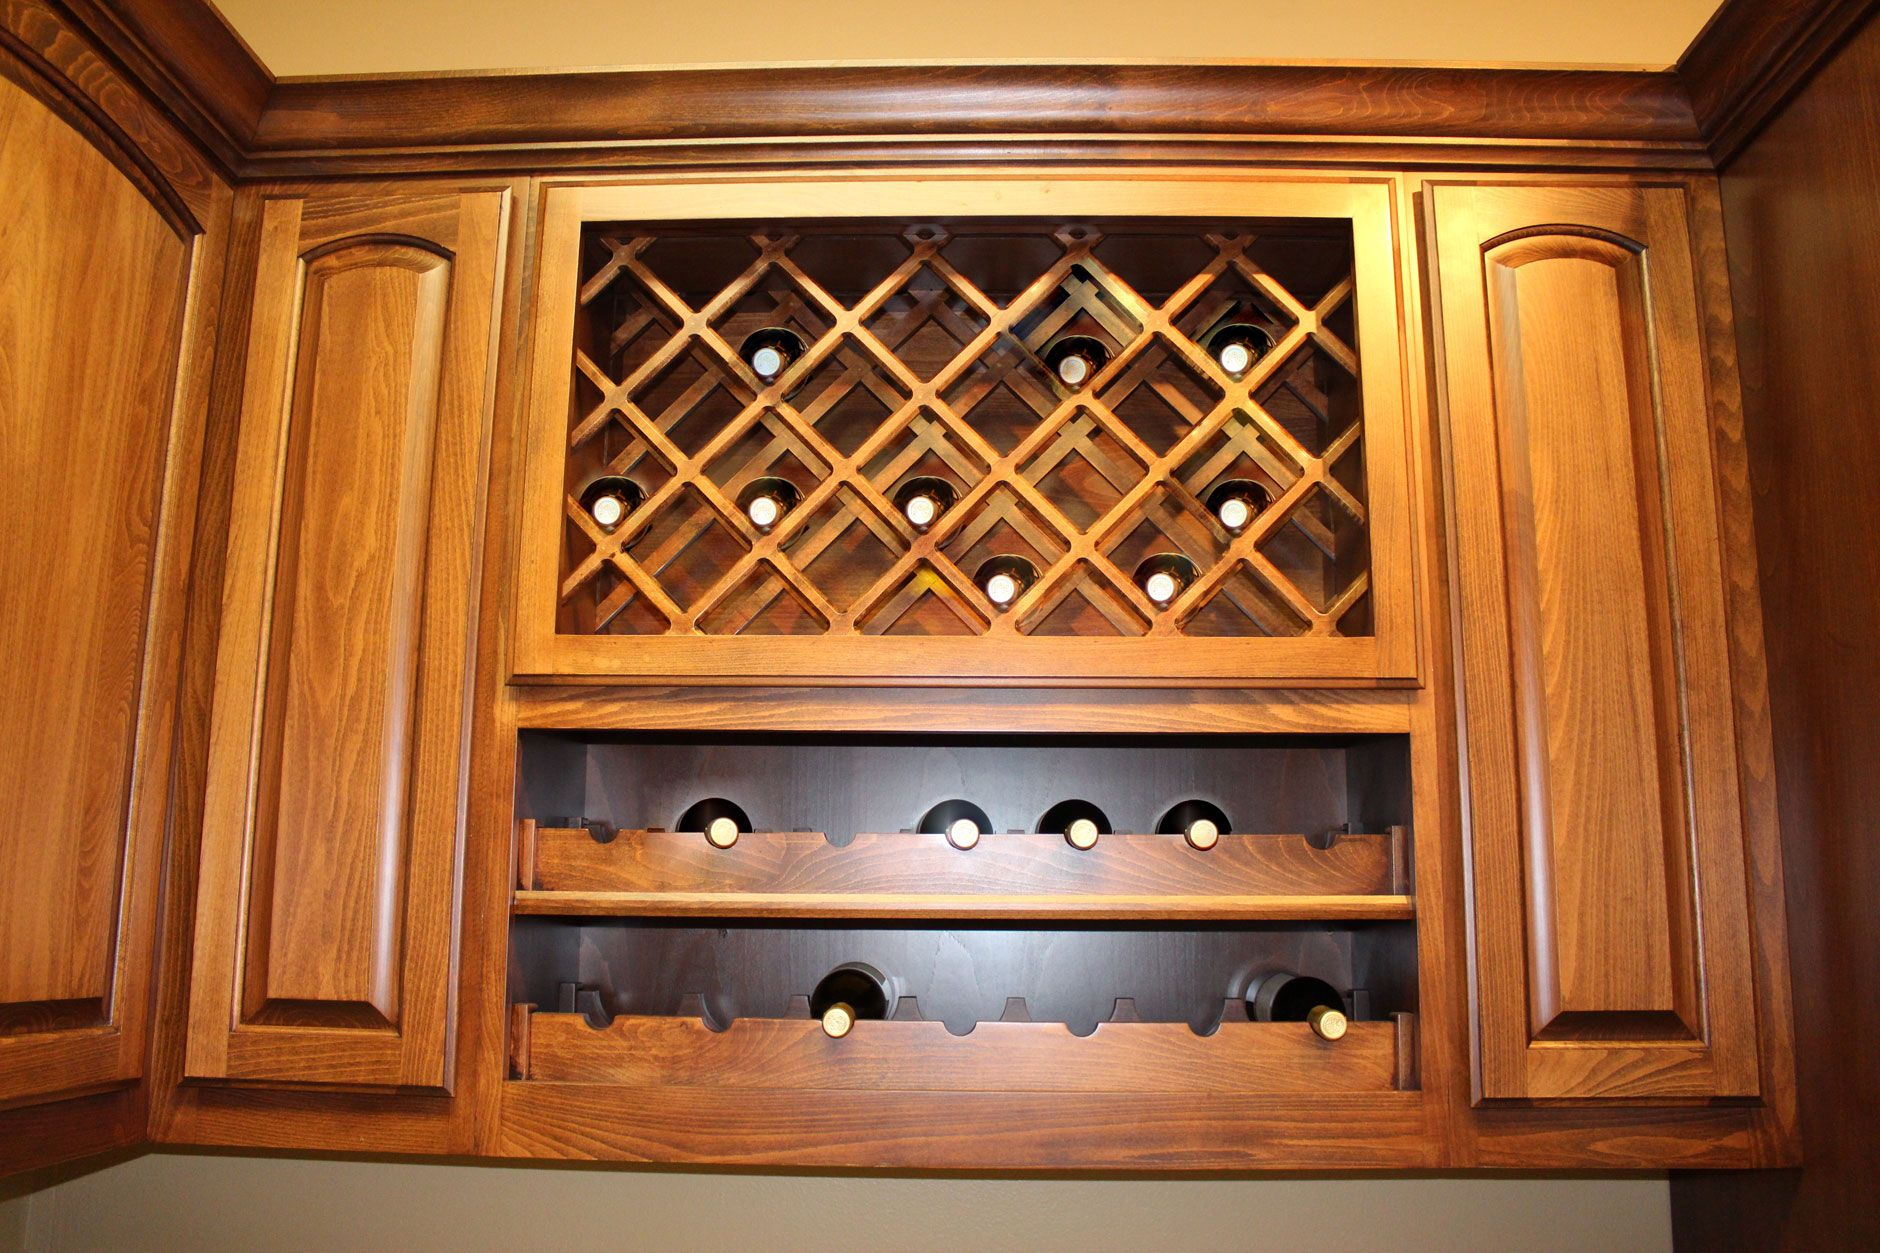 Wine Rack Lattice Rack Over Scalloped Rack Burrows Cabinets Central Texas Builder Direct Custom Cabine Kitchen Wine Rack Wine Rack Kitchen Cabinet Design